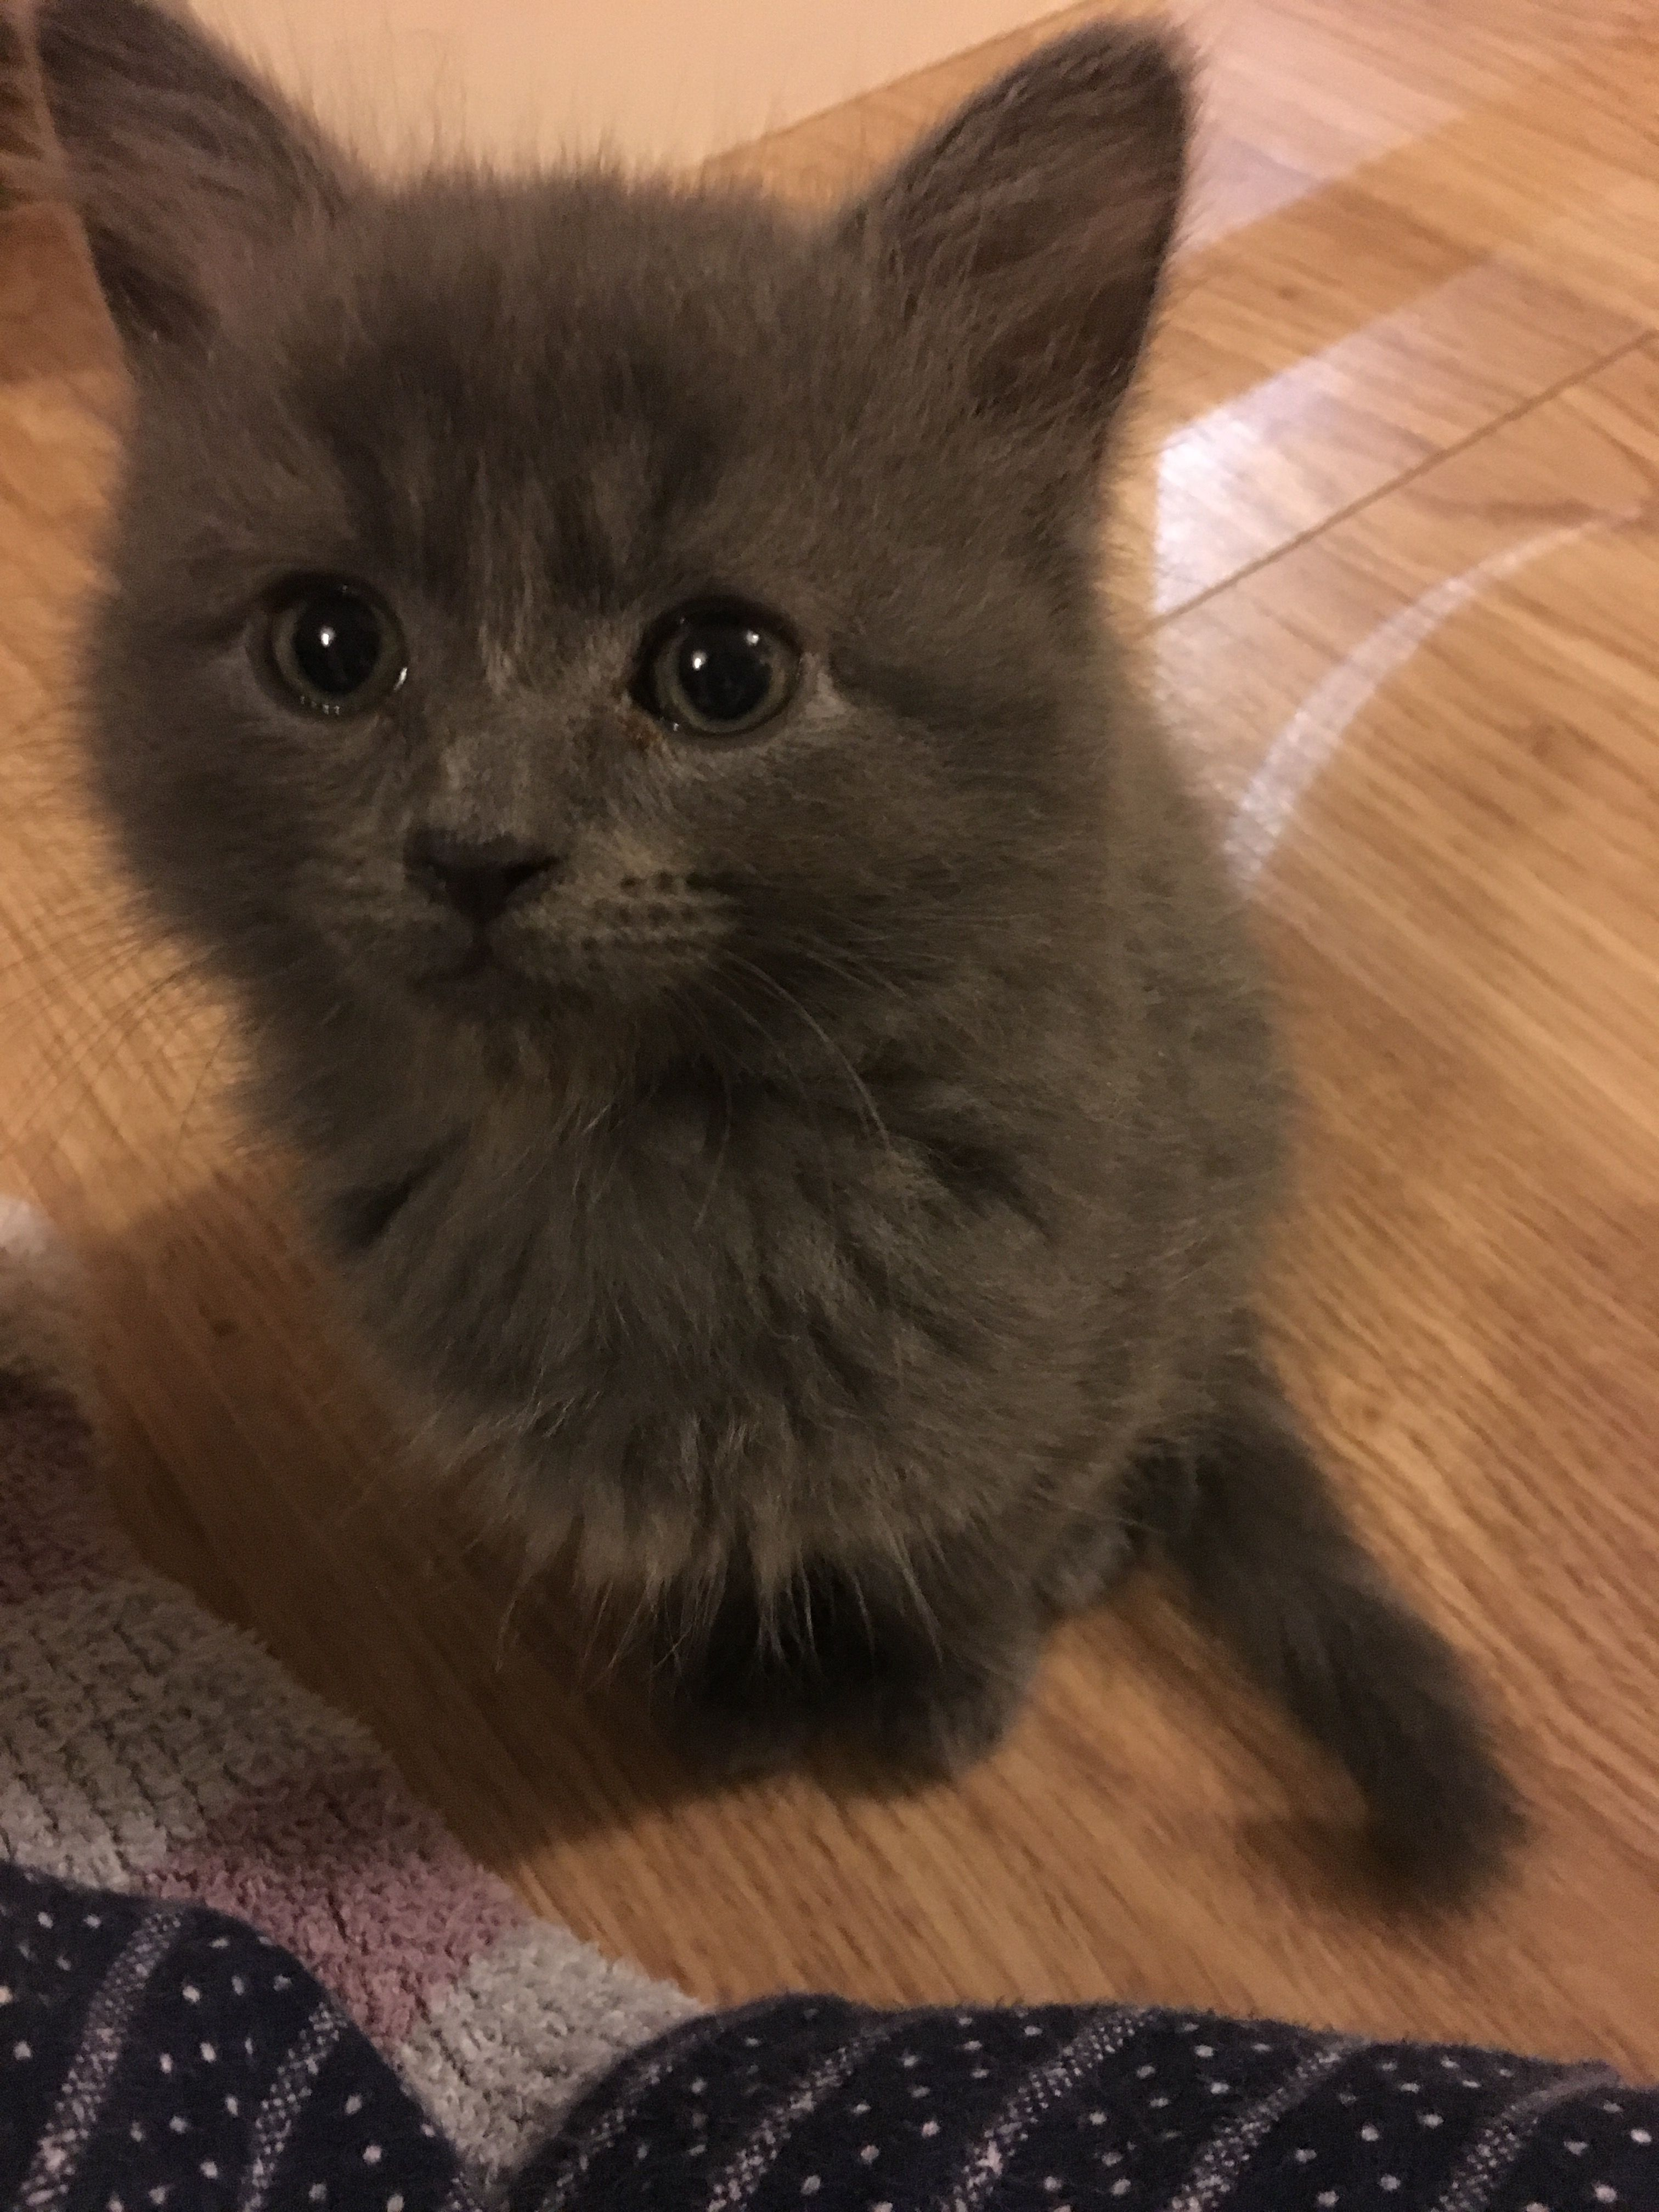 Baby Grey Fluffy Kitten Cute Cats And Kittens Cute Cats Fluffy Kittens